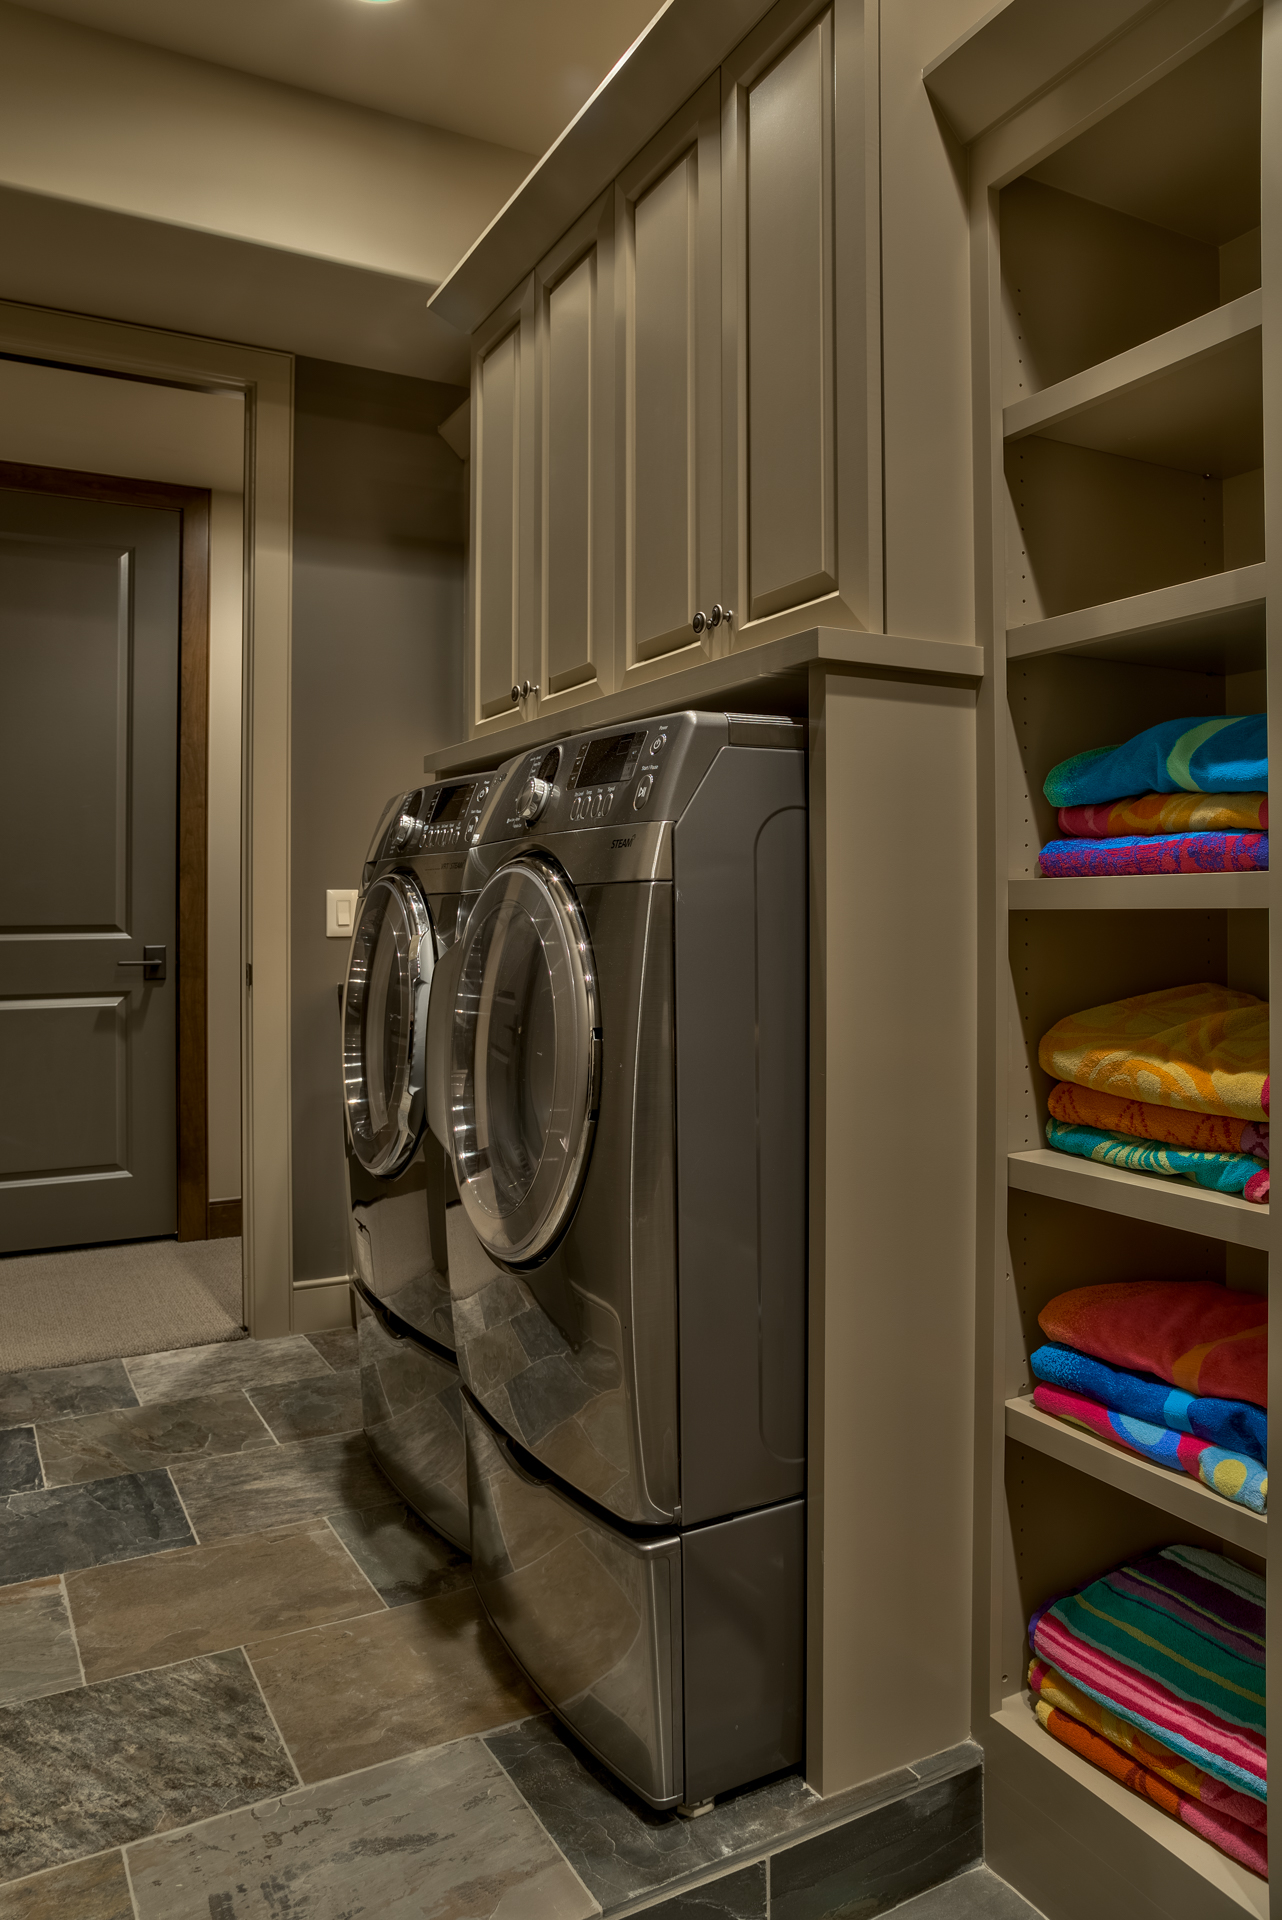 Pool Laundry Room